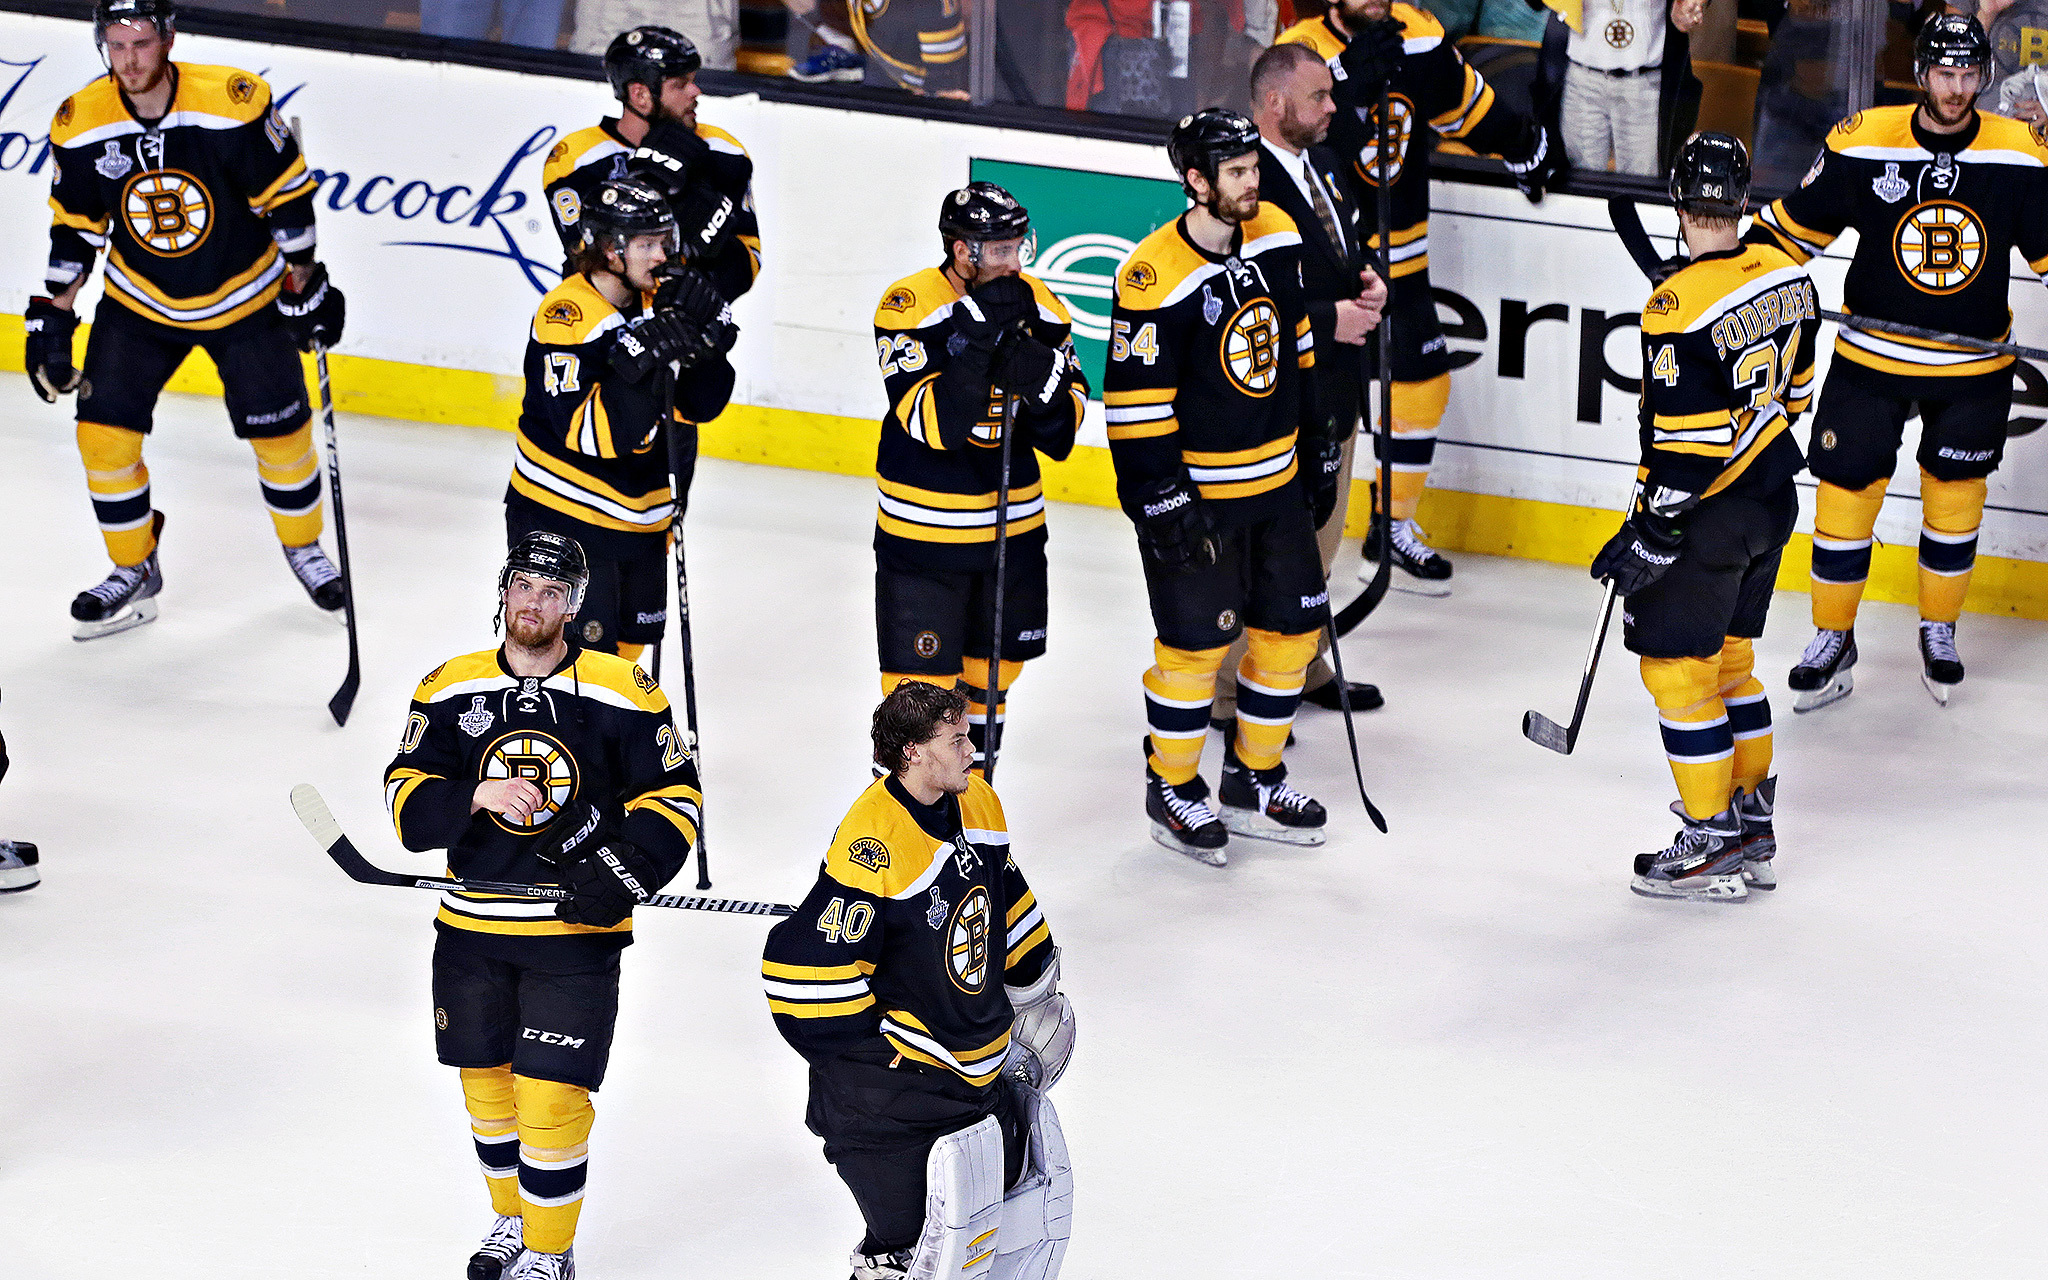 Boston Bruins Wallpapers Images Photos Pictures Backgrounds